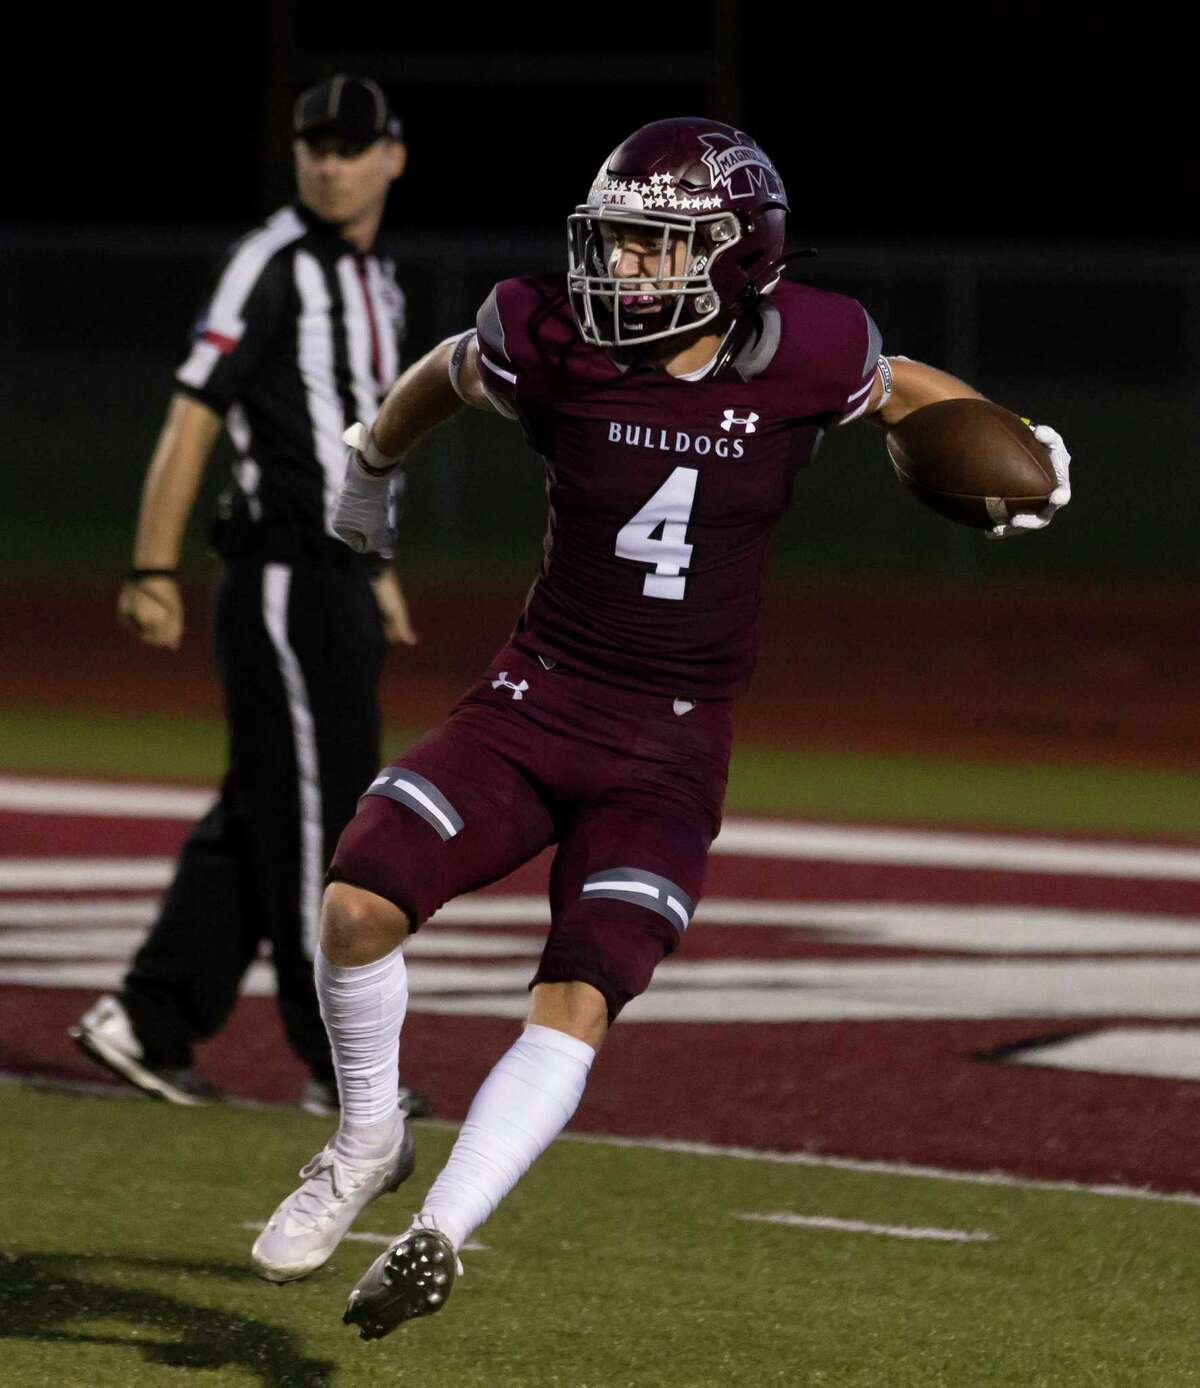 #4 of Magnolia reacts after he scores a touchdown during the first quarter of a District 8-5A (Div. I) football game against Caney Creek at Bulldog Stadium, Friday, Oct. 10, 2021, in Magnolia.